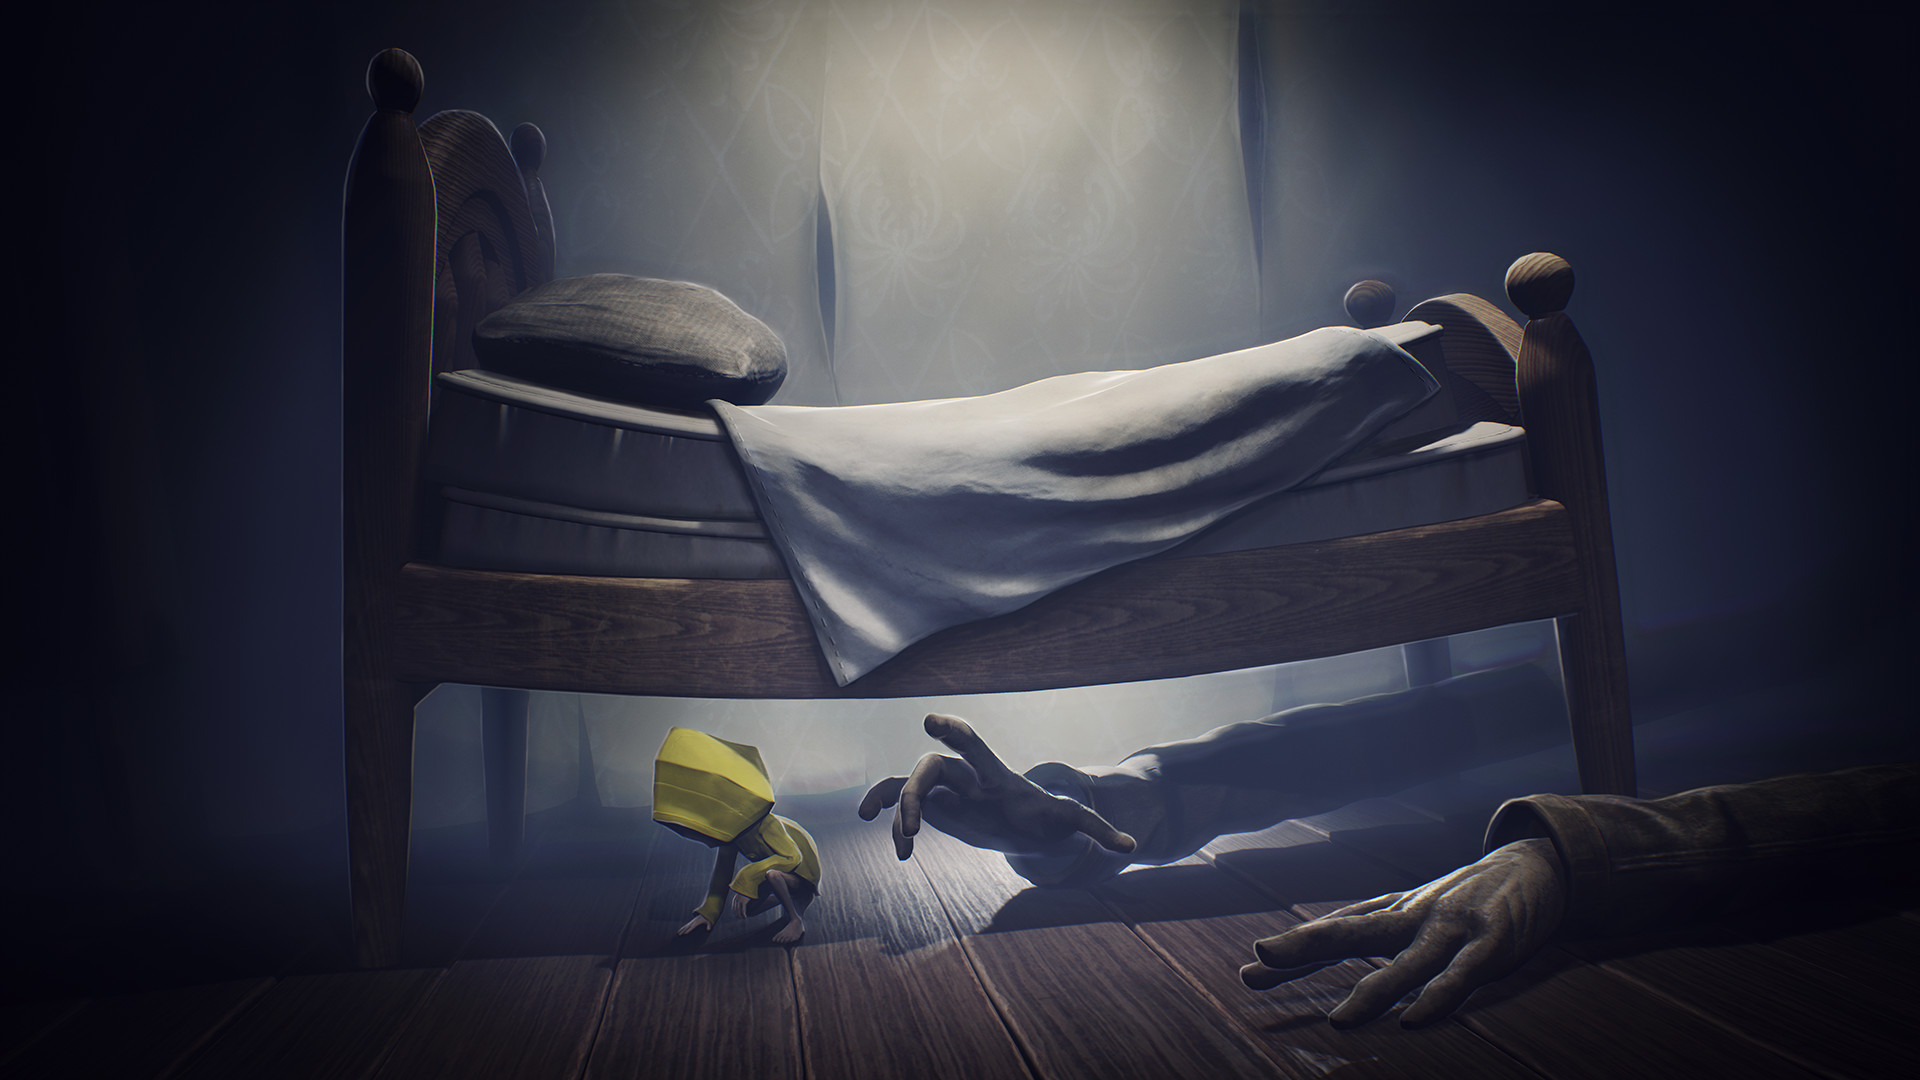 download little nightmares secrets of the maw chapter 1 inc. all dlcs and updates repack by corepack singlelink iso rar part kumpulbagi diskokosmiko